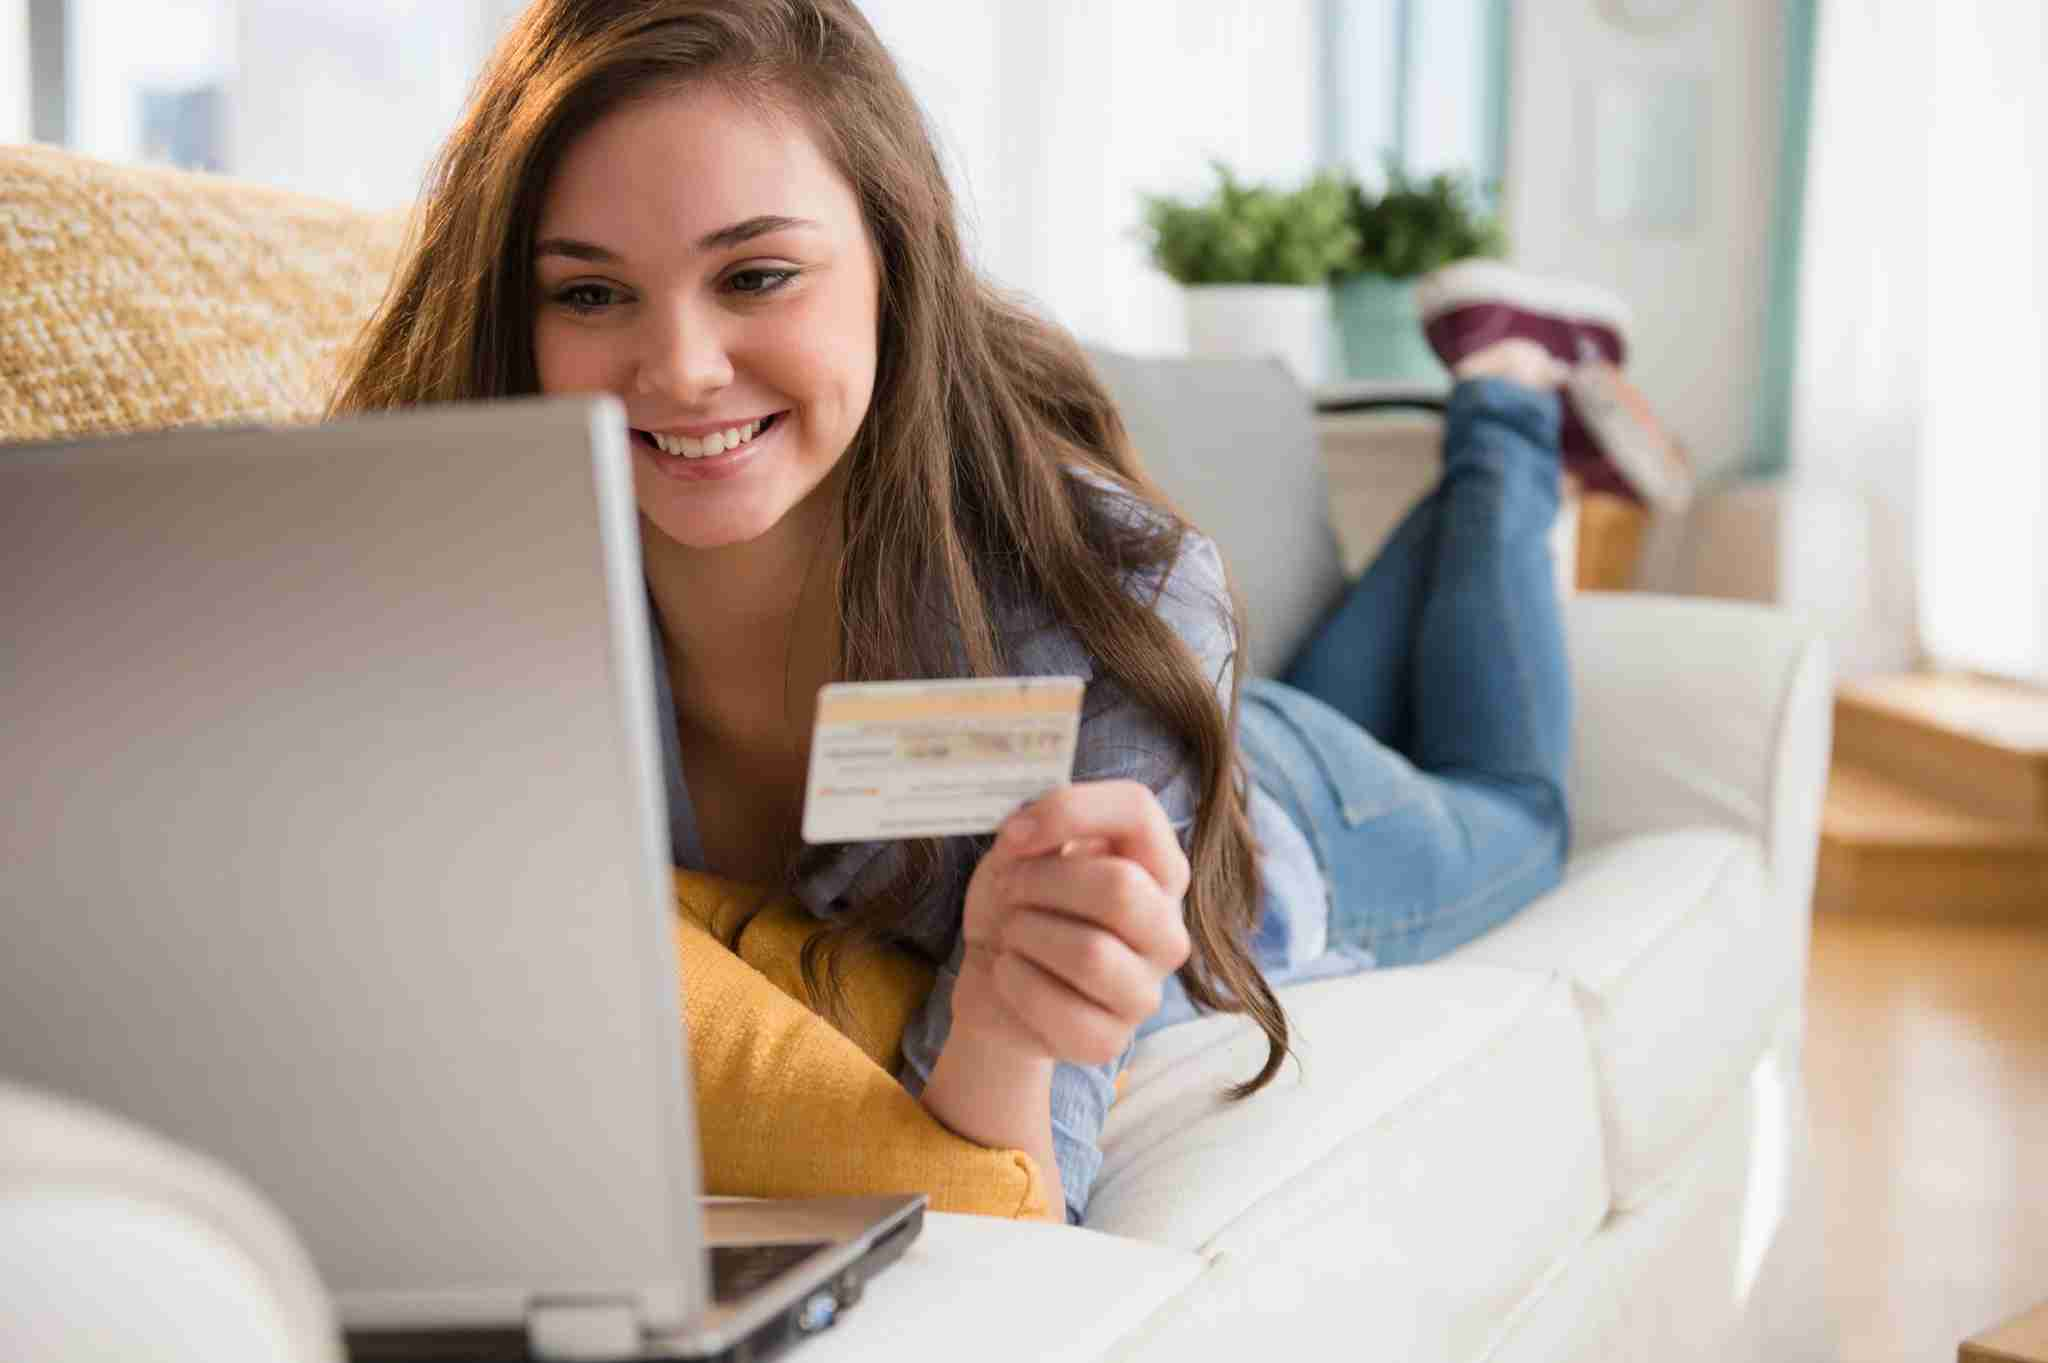 teen girl with credit card